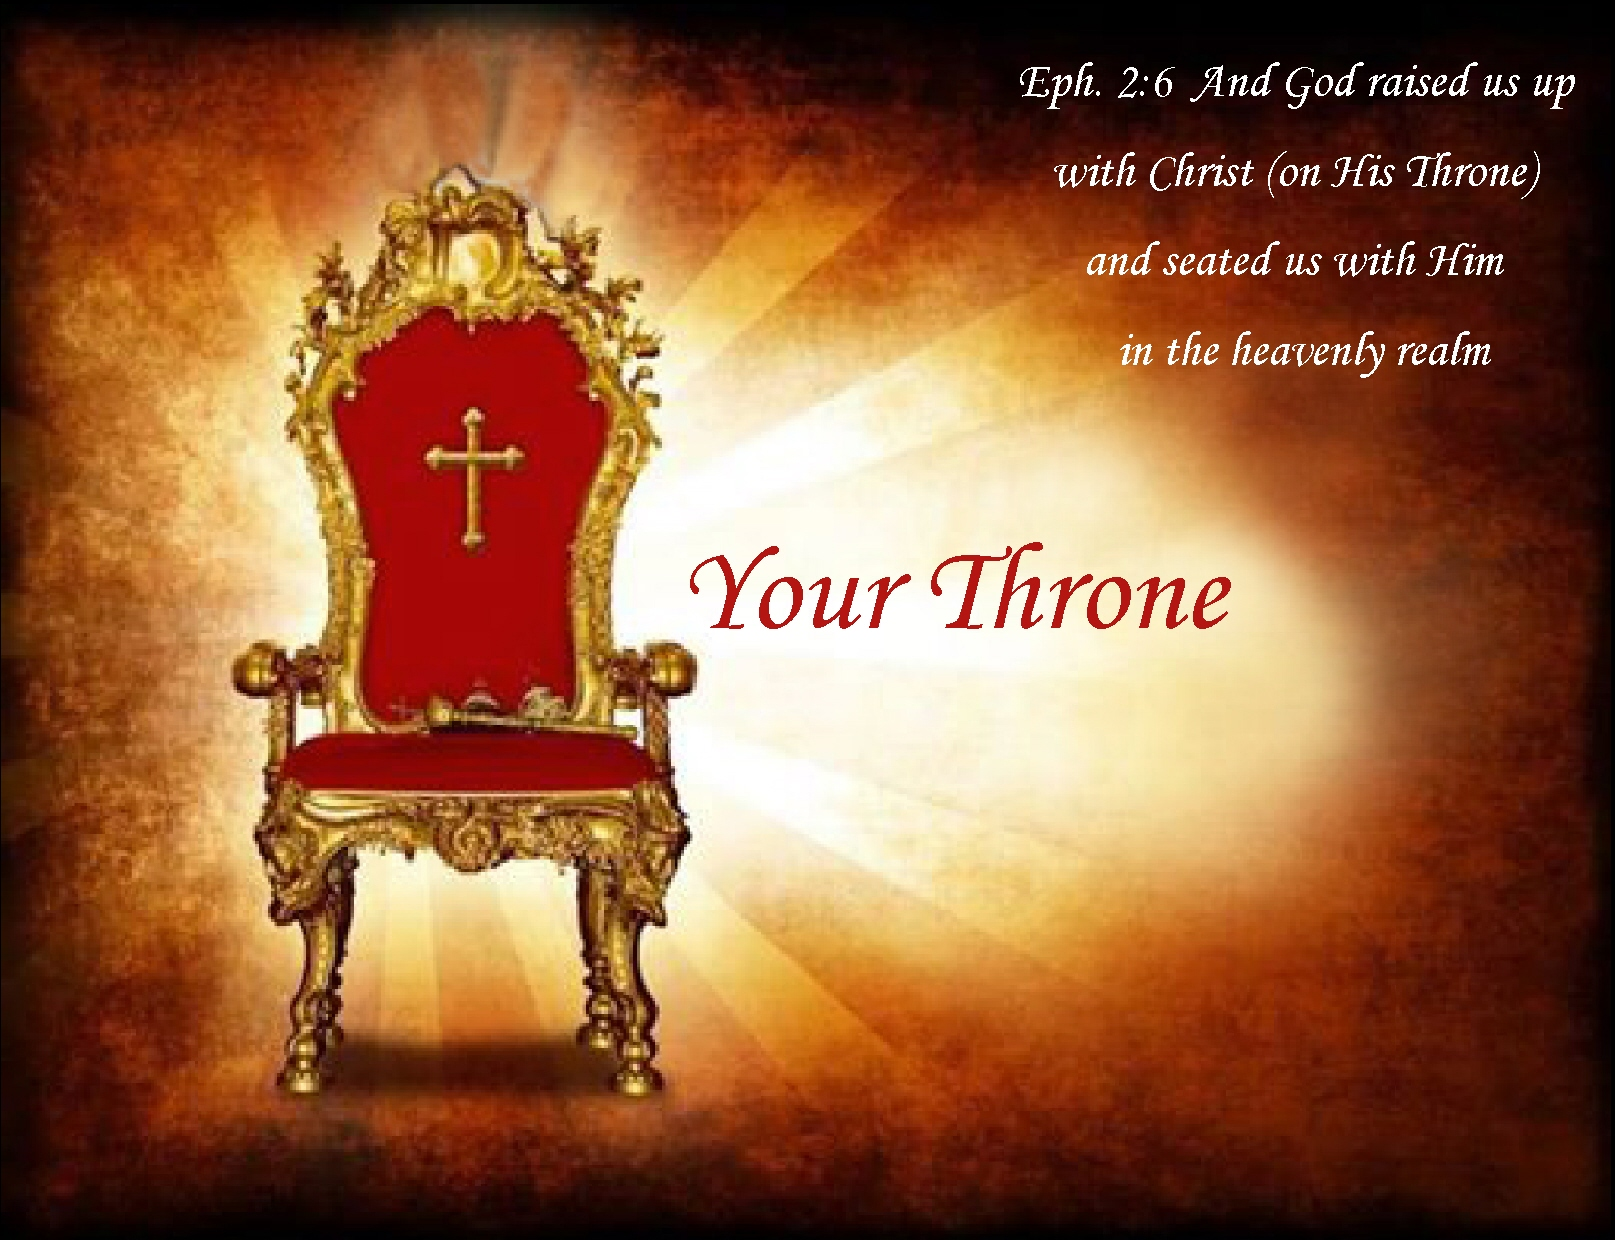 Your throne prov 252 it is the glory of kings to reveal a matter throne 11 m 150 altavistaventures